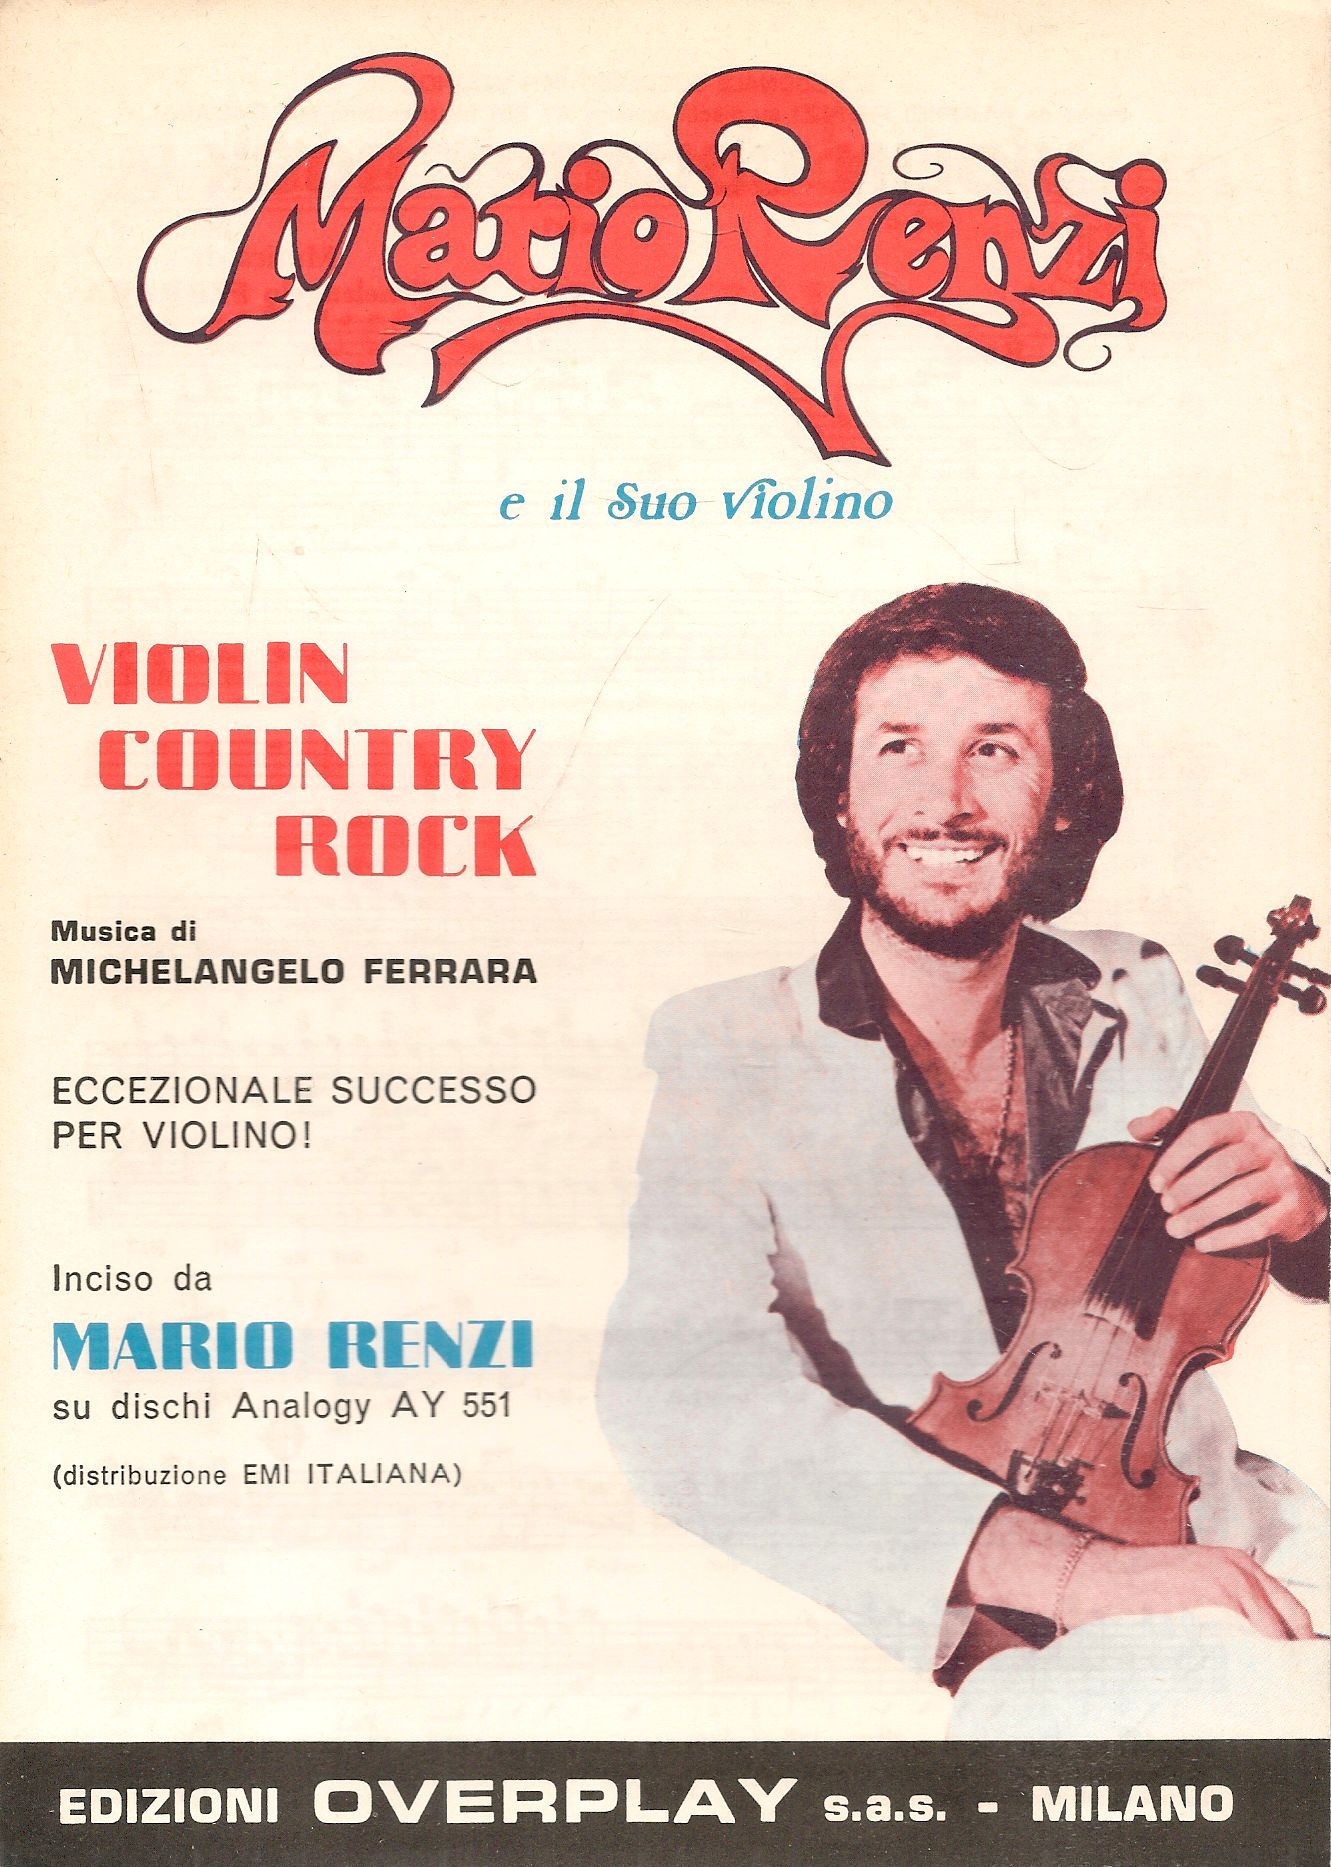 VIOLIN COUNTRY ROCK - MARIO RENZI - SPARTITO-SHEET MUSIC